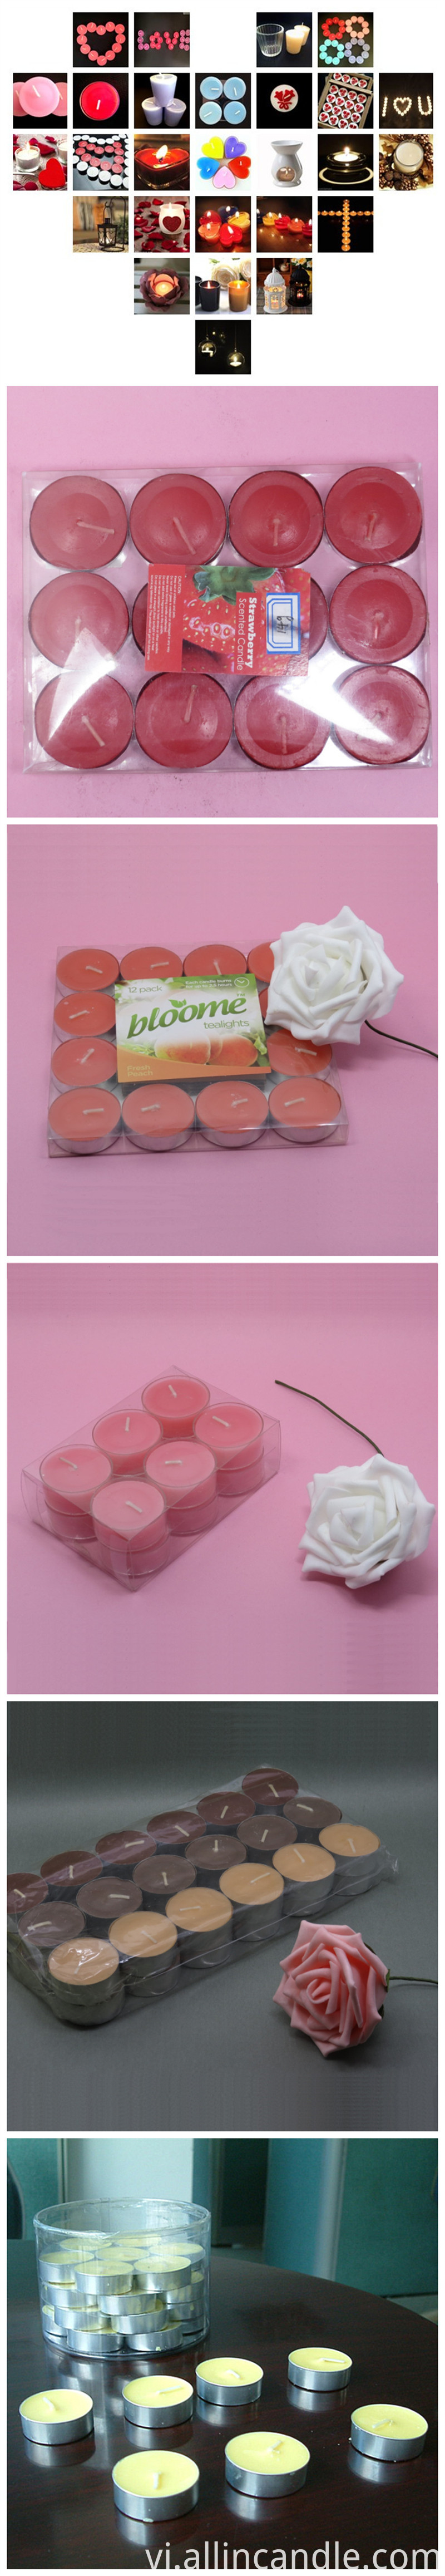 tealights candle (1)